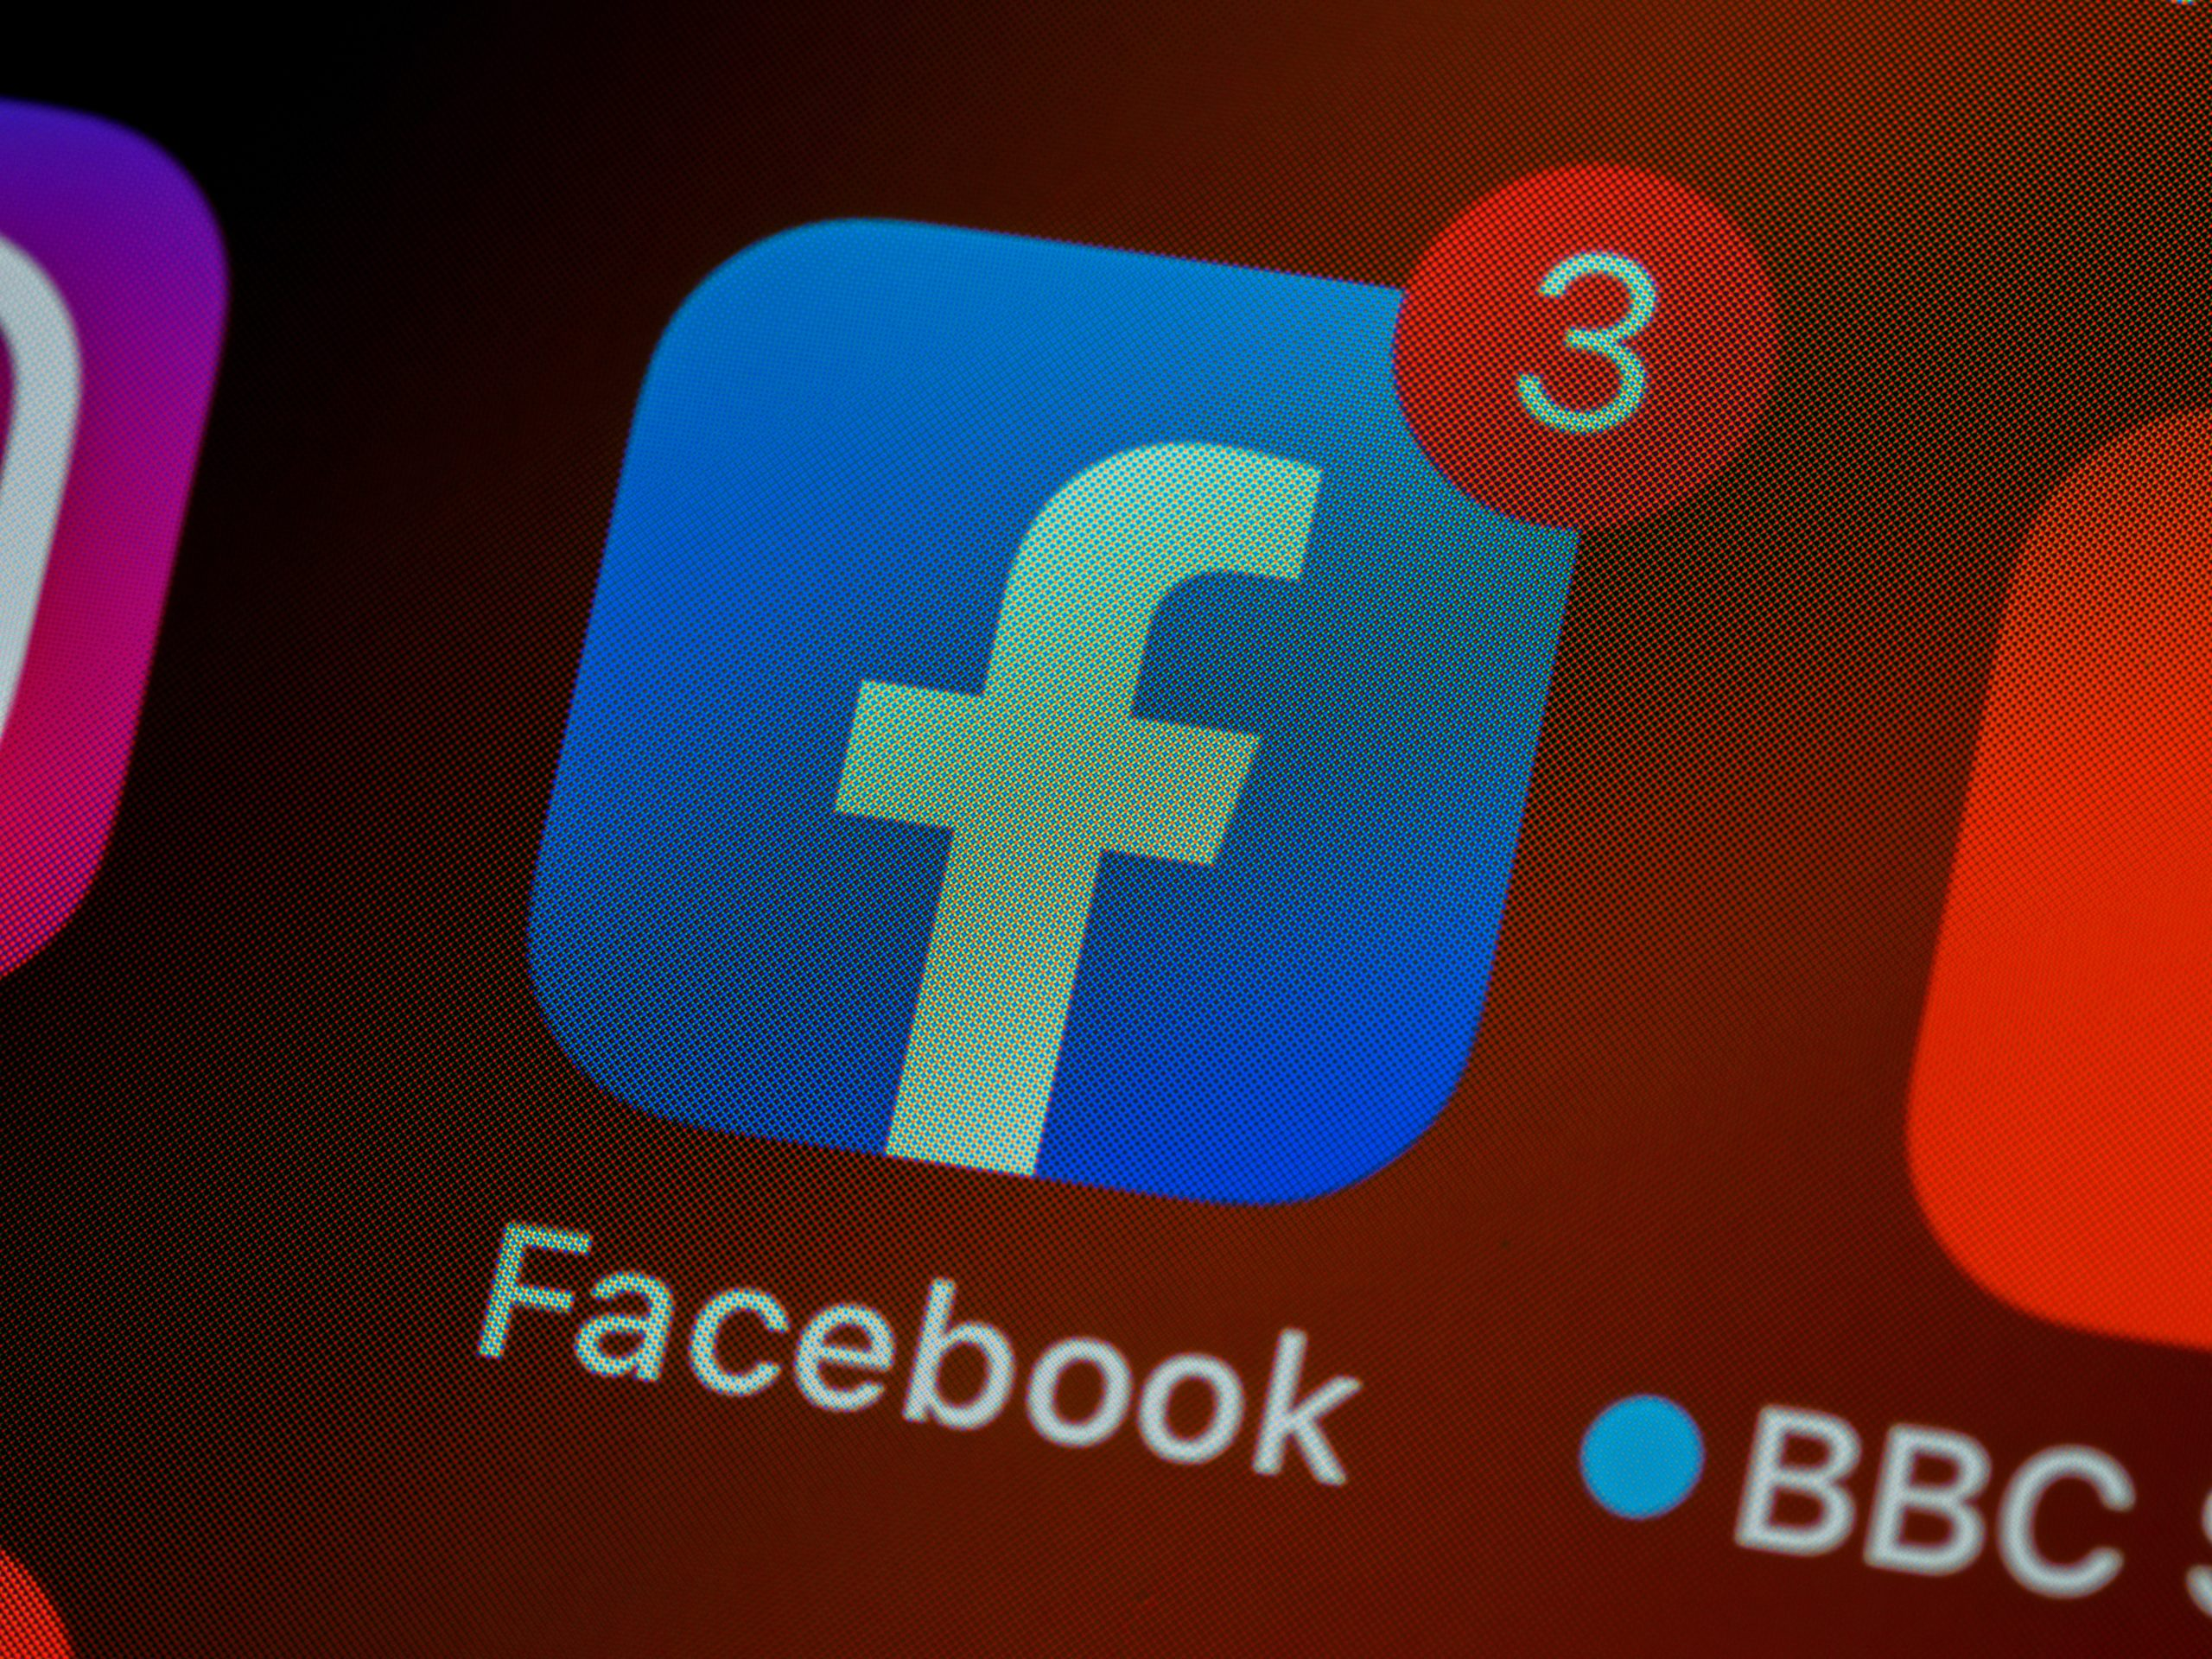 Facebook icon with 3 notifications on a smartphone or tablet. Photo by Brett Jordan on Unsplash